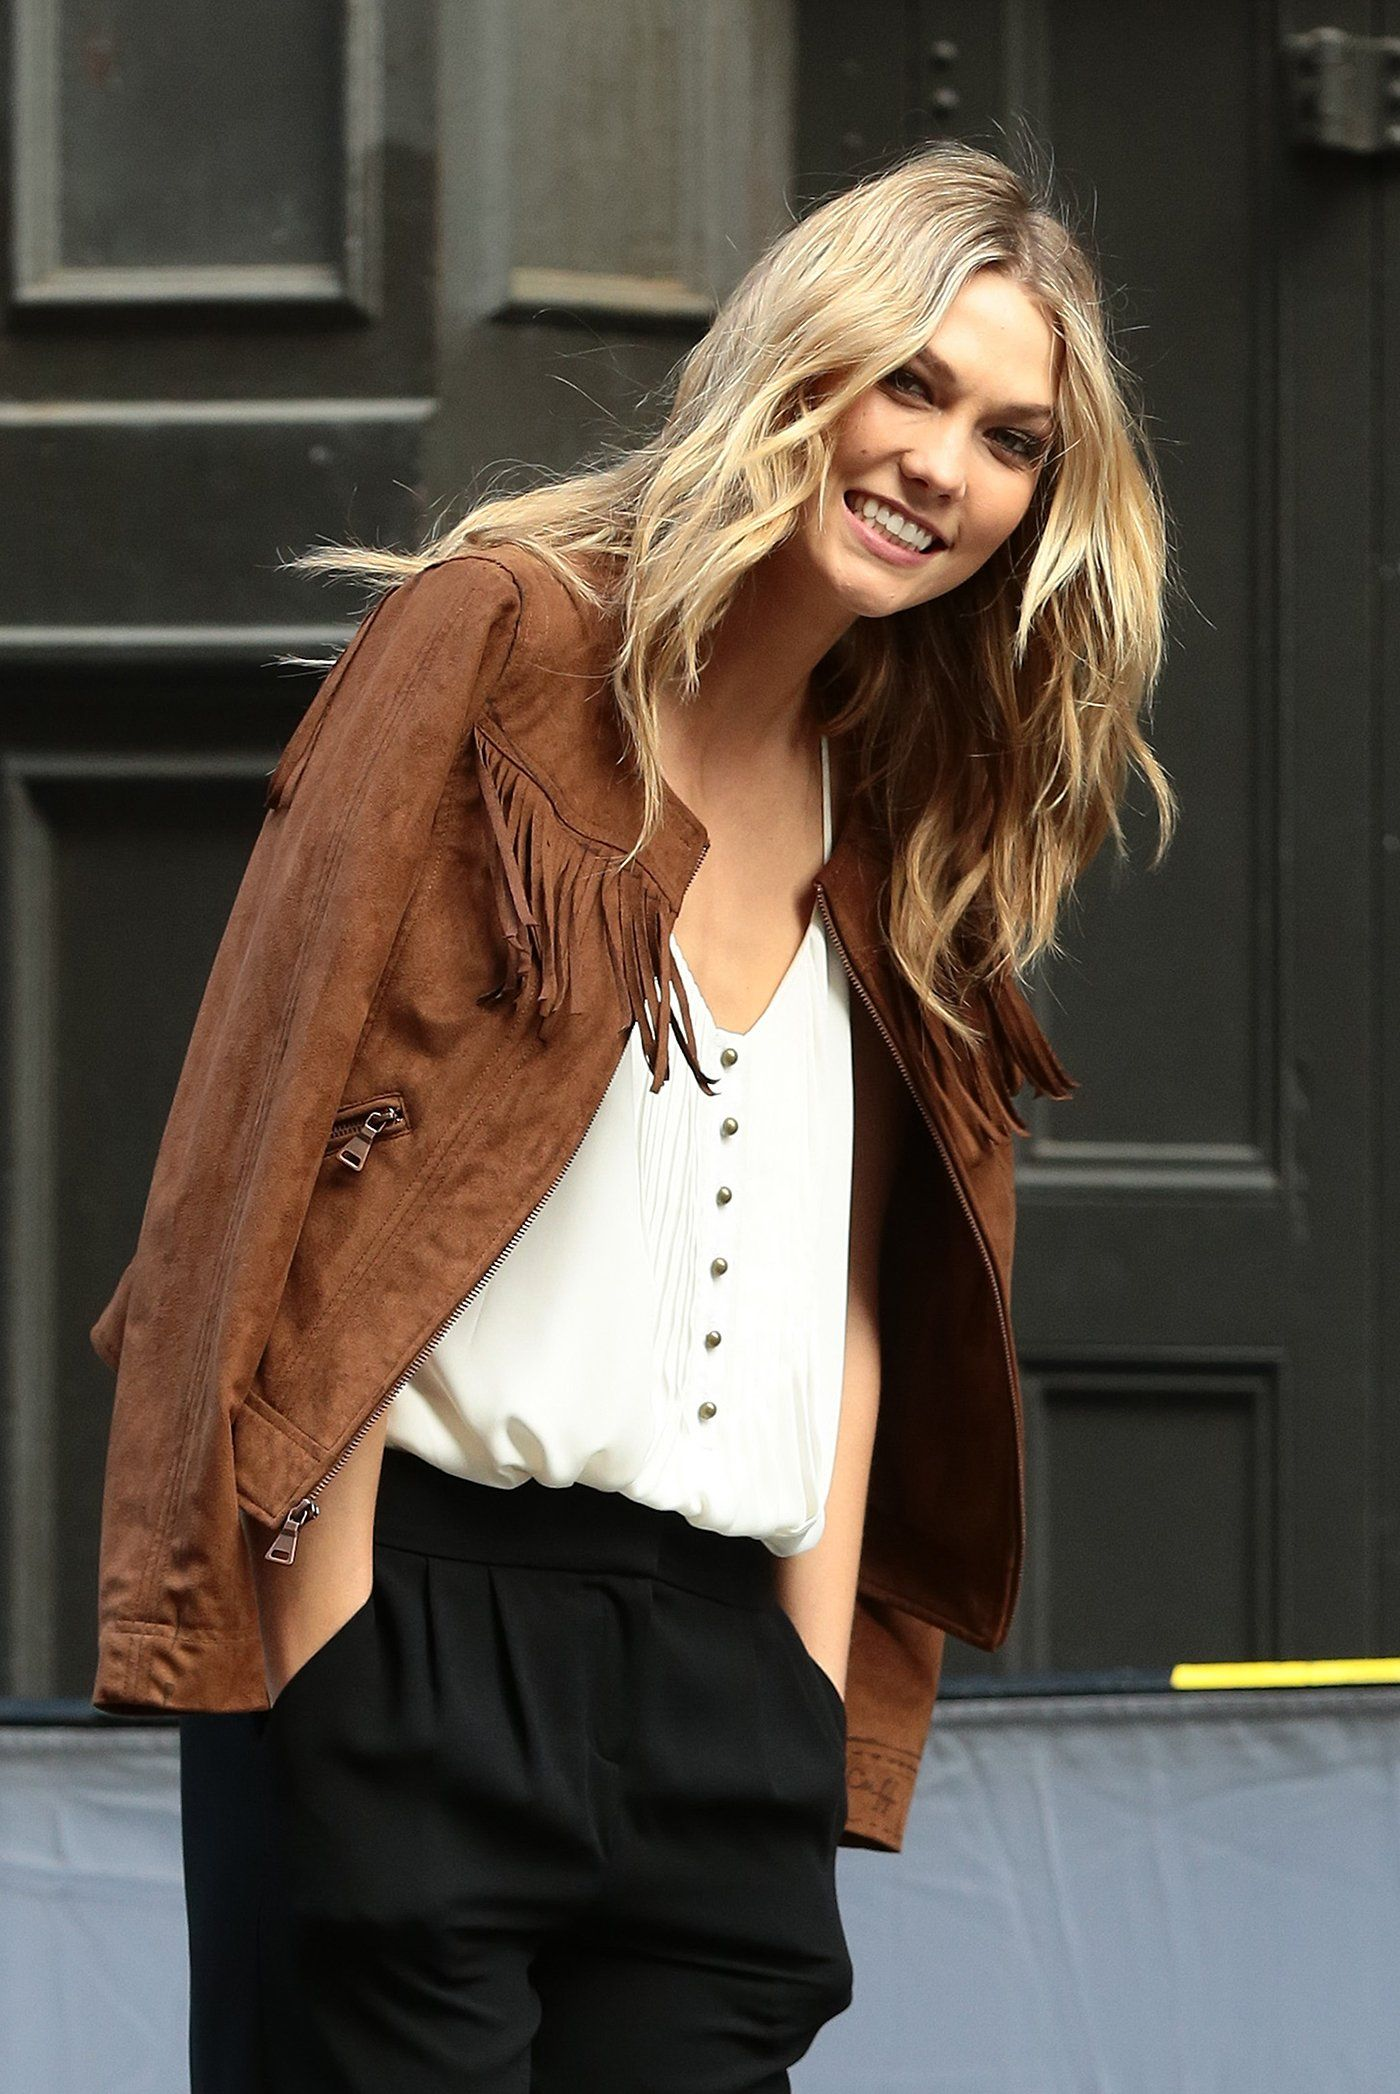 WHO: Karlie Kloss WHERE: On the street, New York City WHEN: May 6, 2015